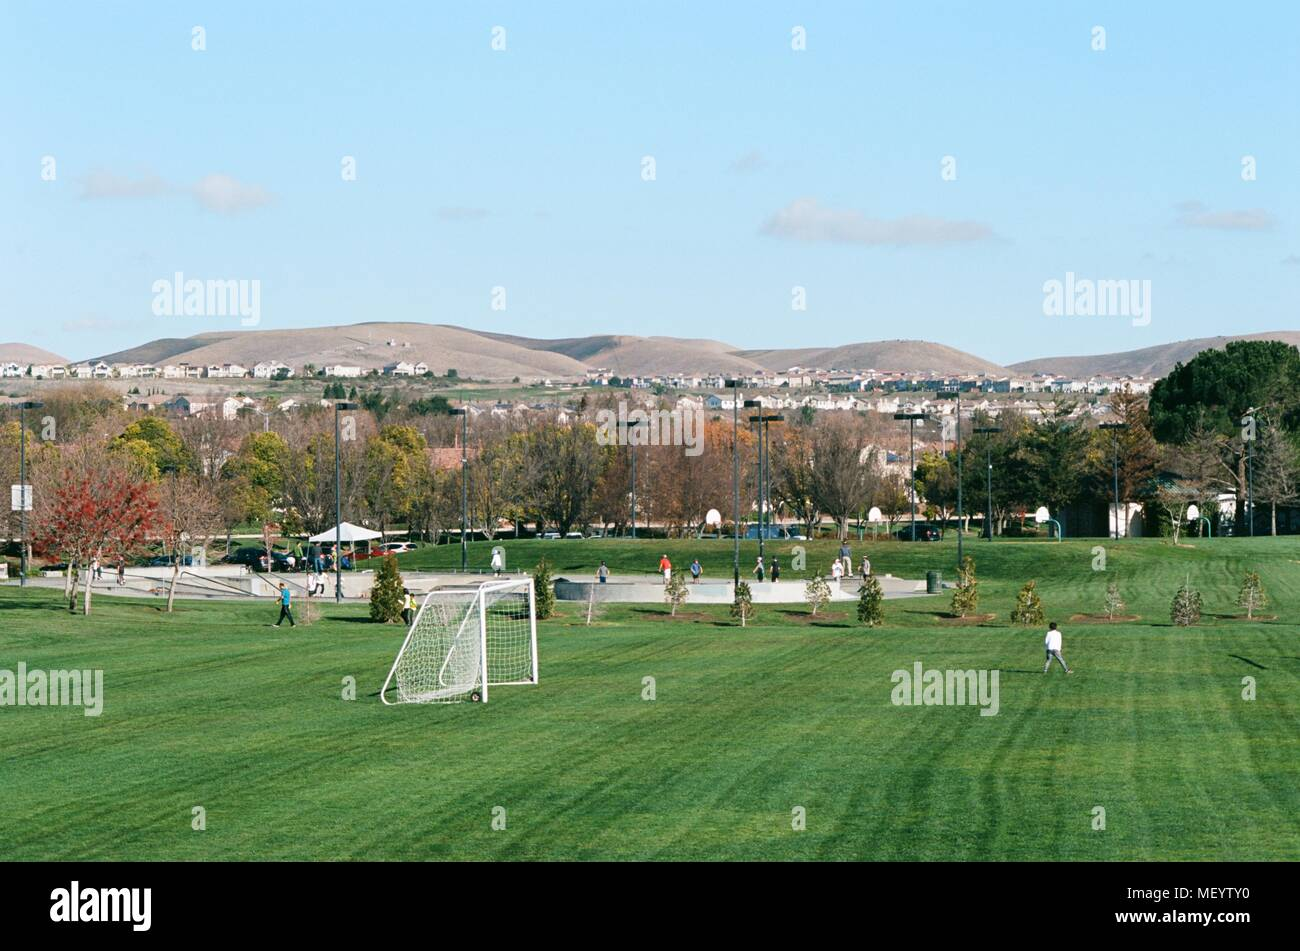 People play soccer at Emerald Glen park, with new housing visible in the background, a public park in the rapidly-developing San Francisco Bay Area city of Dublin, California, January 4, 2018. () - Stock Image